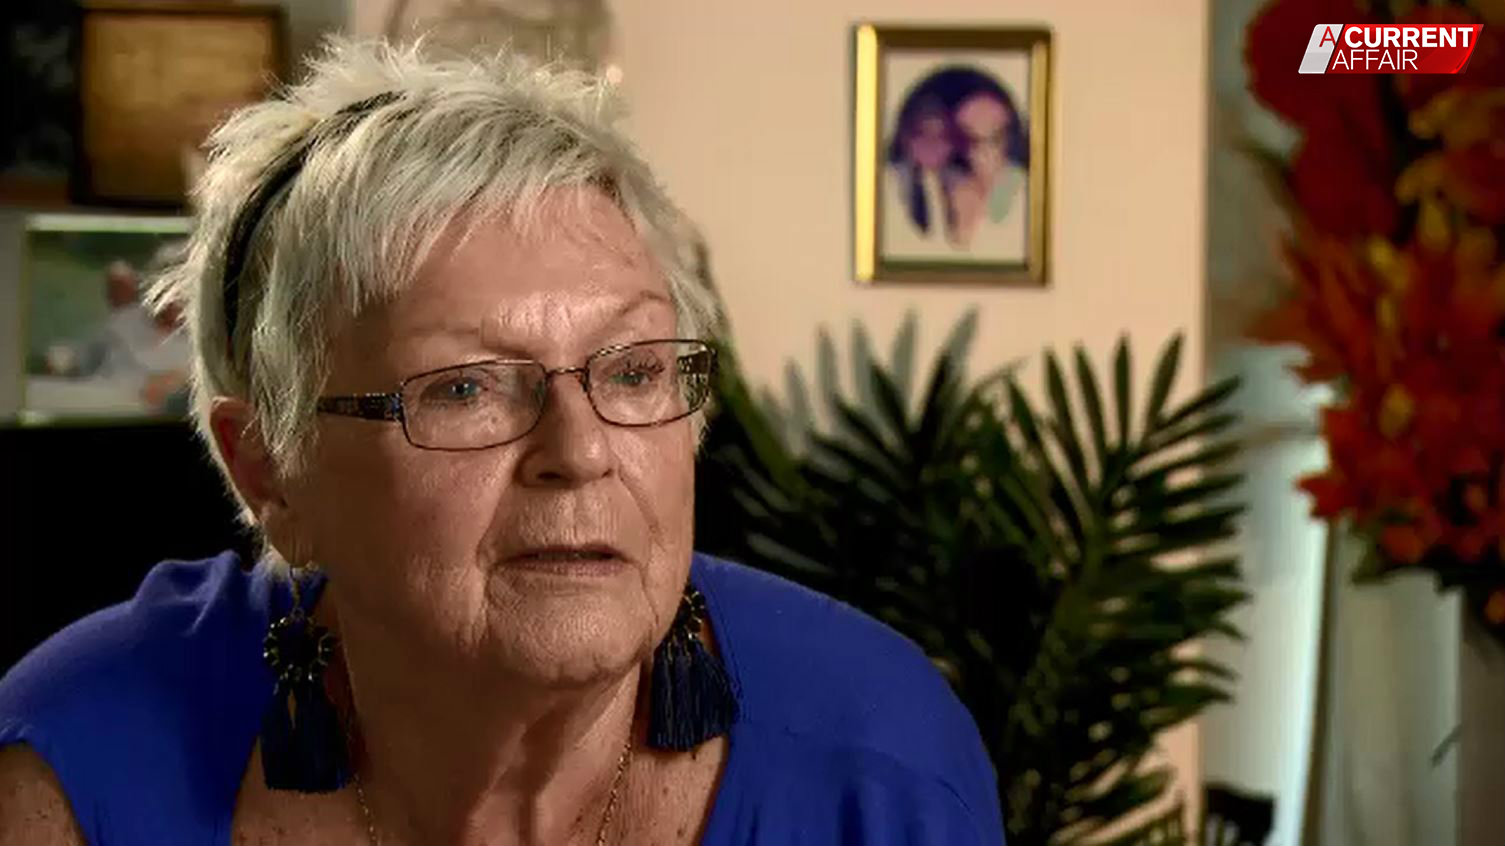 WWII veteran's widow baffled by cut to home care